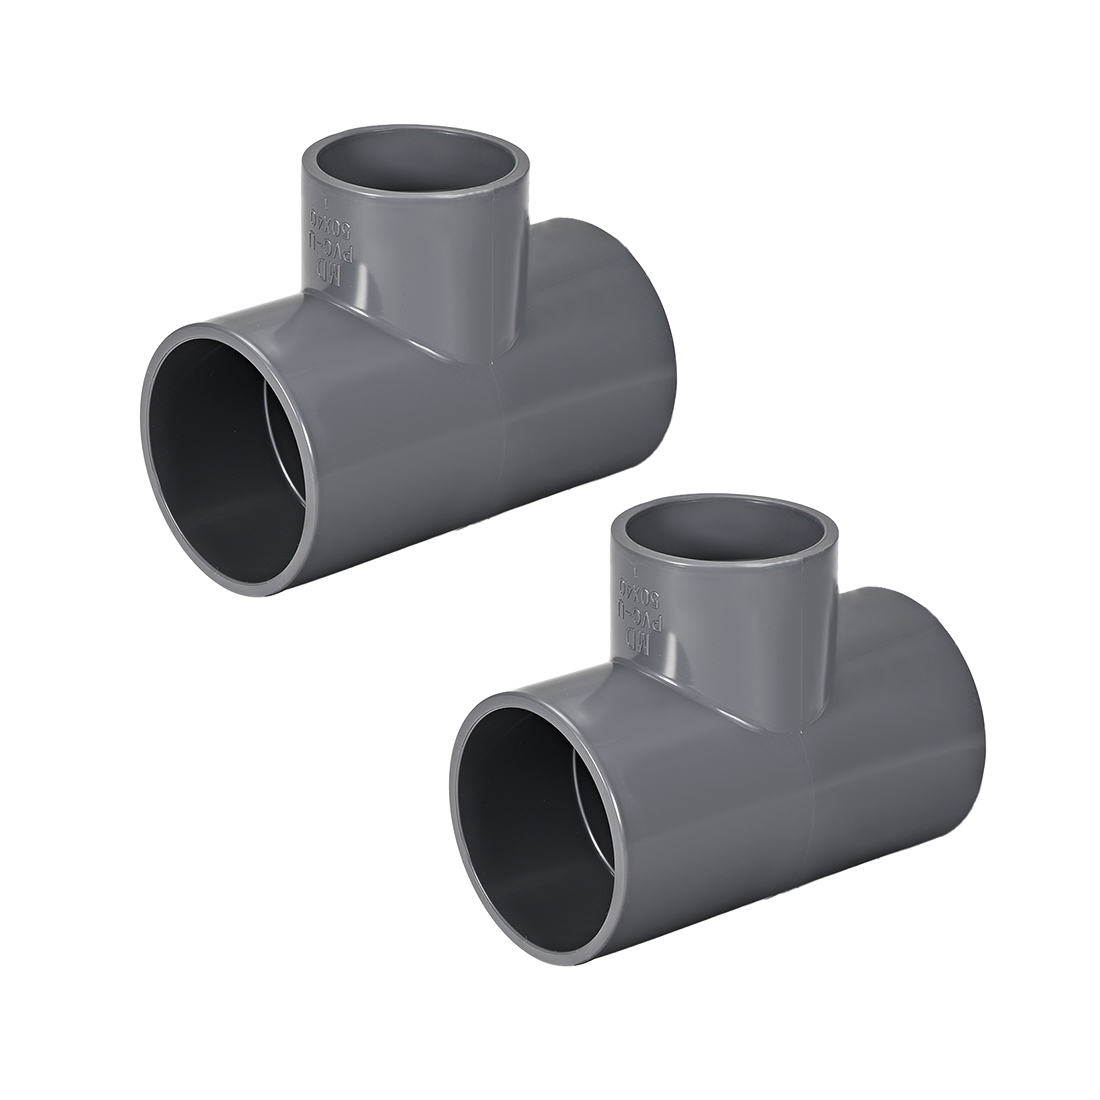 PVC Pipe Fitting Tee 401-Series Gray 1-1/2-inch X 2-inch Socket 2pcs